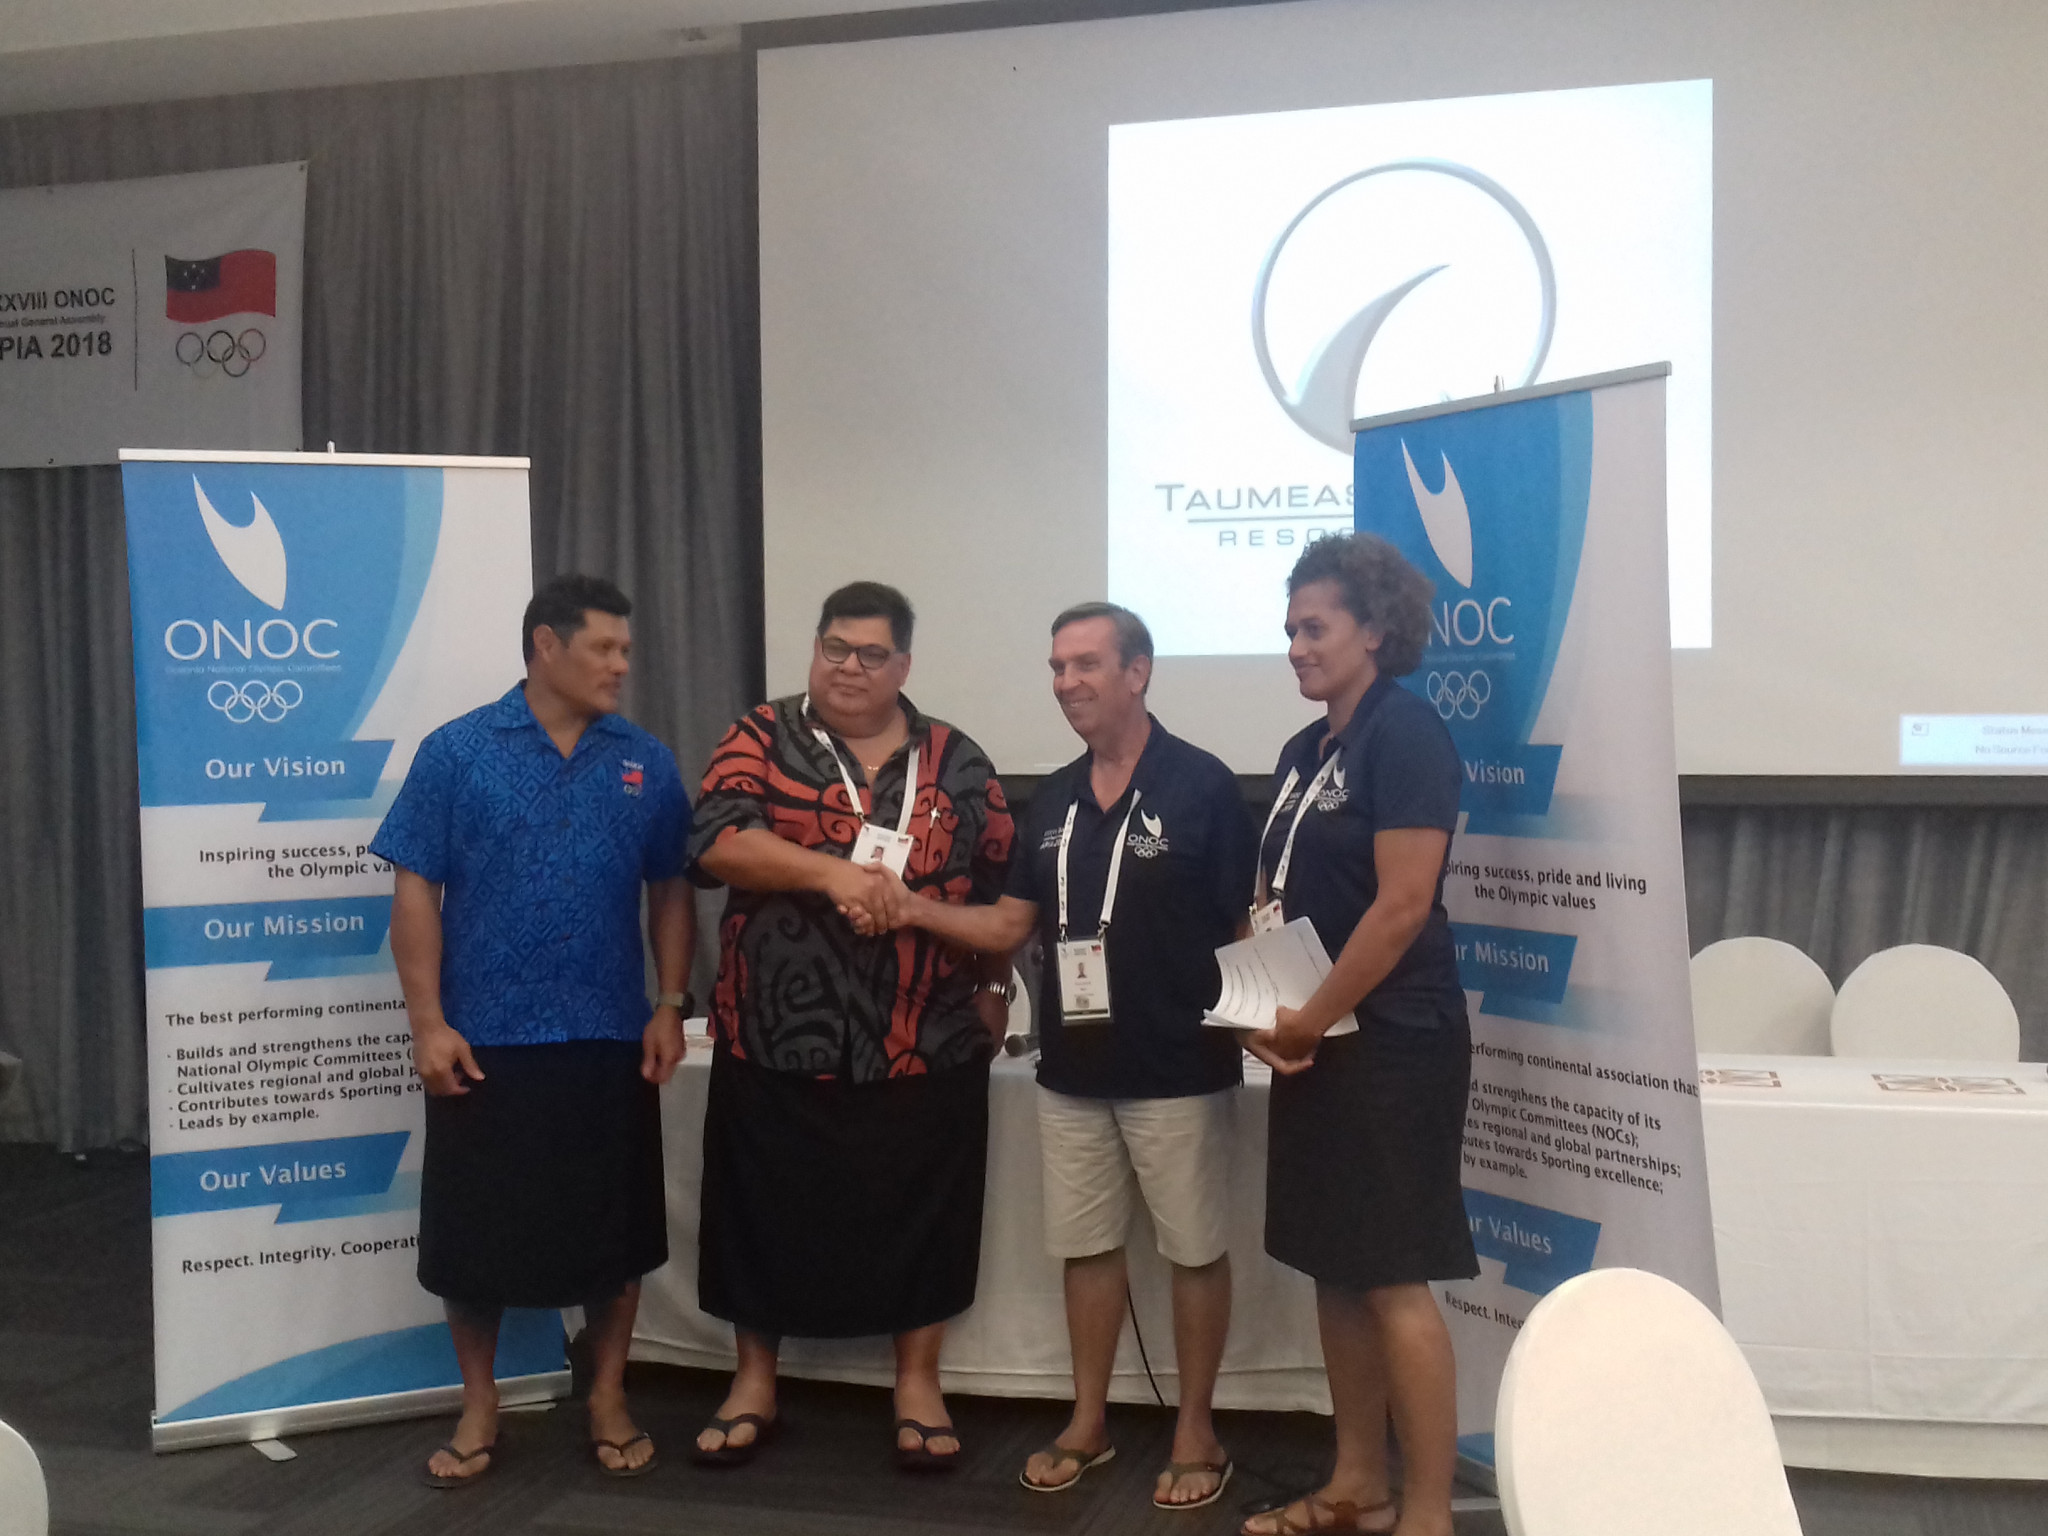 ONOC and Samoan NOC sign education programme deal